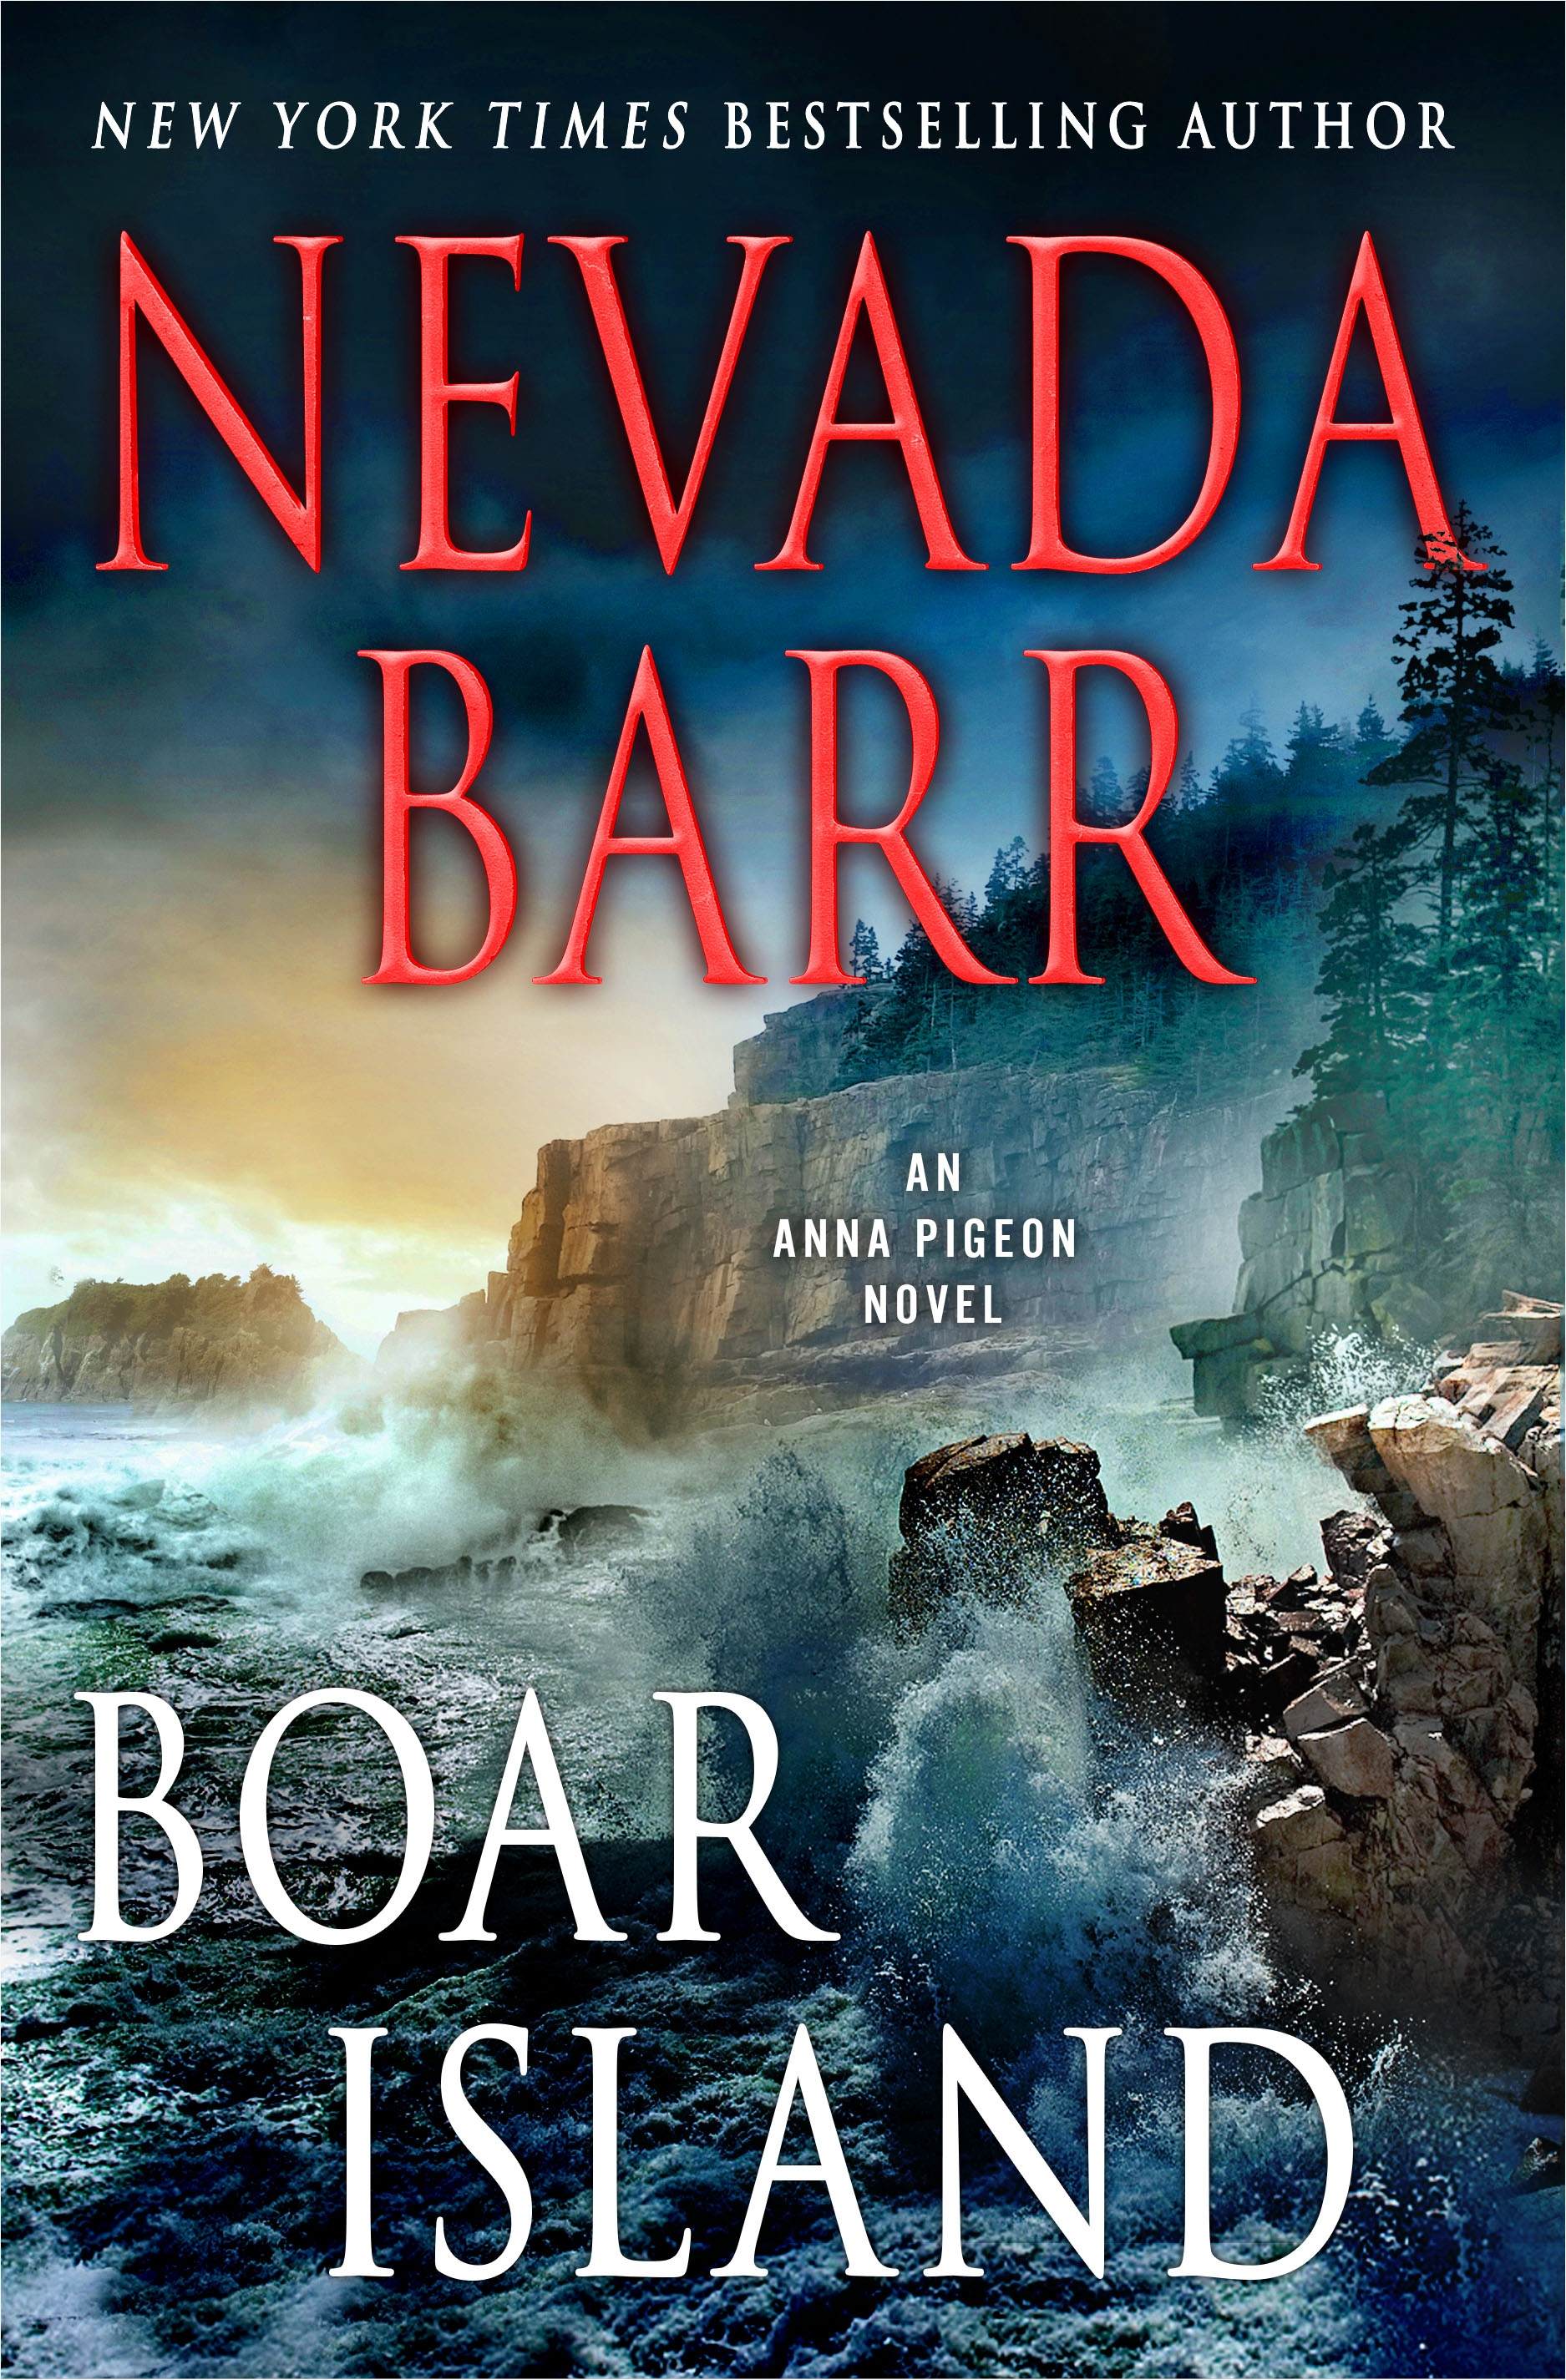 Boar Island An Anna Pigeon Novel